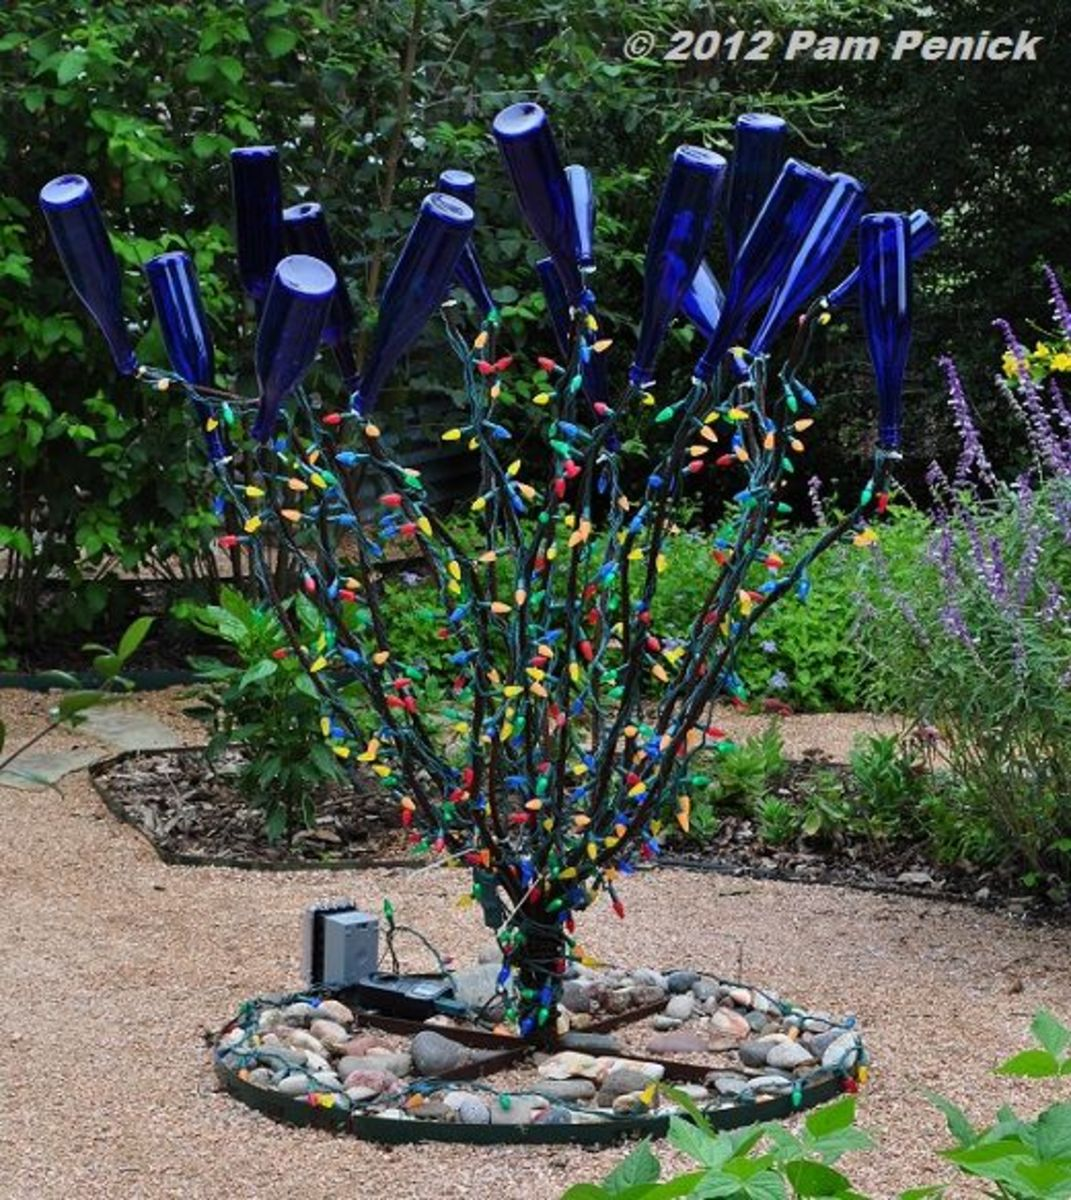 There are many ways people are adapting this African tradition in urban America.I saw one garden where each piece of cobalt blue glass, including saucers and plates are staked into the ground throughout the garden.